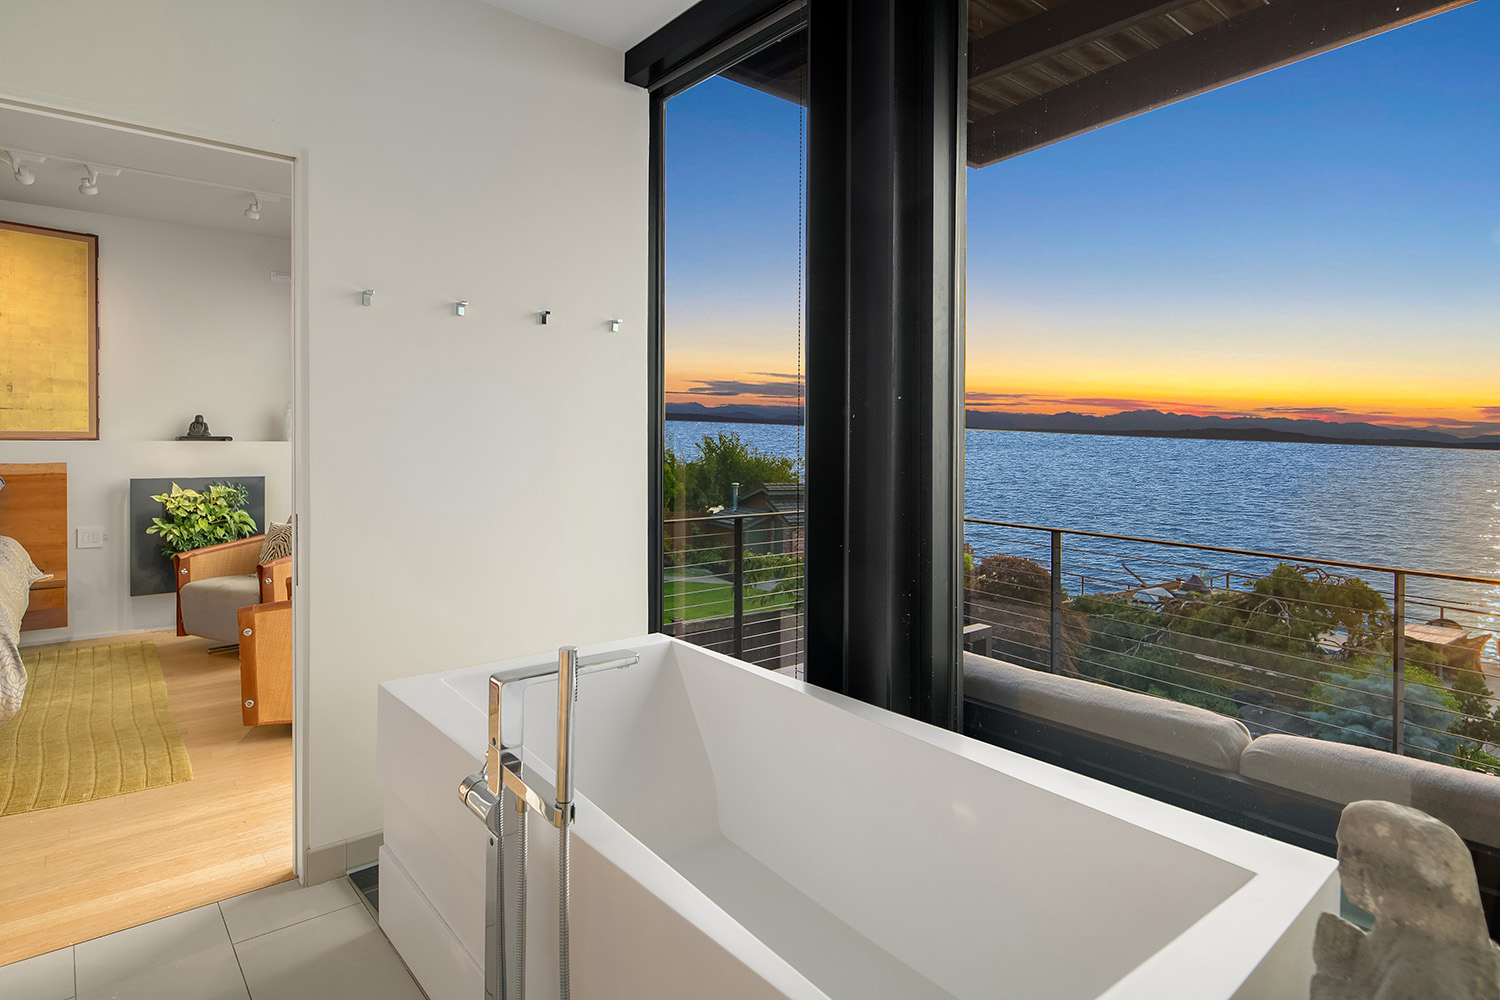 "Hello, waterfront! This home was designed by{&nbsp;}Tom Kundig and sits on 50 feet of waterfront. Listed for $4.25 million, it features three bedrooms, 2.75 bathrooms, an office, gym, media room and has an outdoor entertaining patio with a pool and hot tub. Did we mention the elevator and views of the{&nbsp;}Puget Sound, Blake Island and Bainbridge?{&nbsp;}<a  href=""https://www.matrix.nwmls.com/Matrix/Public/Portal.aspx?ID=29829886132#1"" target=""_blank"" title=""https://www.matrix.nwmls.com/Matrix/Public/Portal.aspx?ID=29829886132#1"">More info online</a>. (Image:{&nbsp;}<a  href=""https://www.bdhomeseattle.com/6775-beach-dr-sw"" target=""_blank"" title=""https://www.bdhomeseattle.com/6775-beach-dr-sw"">Tim Van Asselt</a>)"